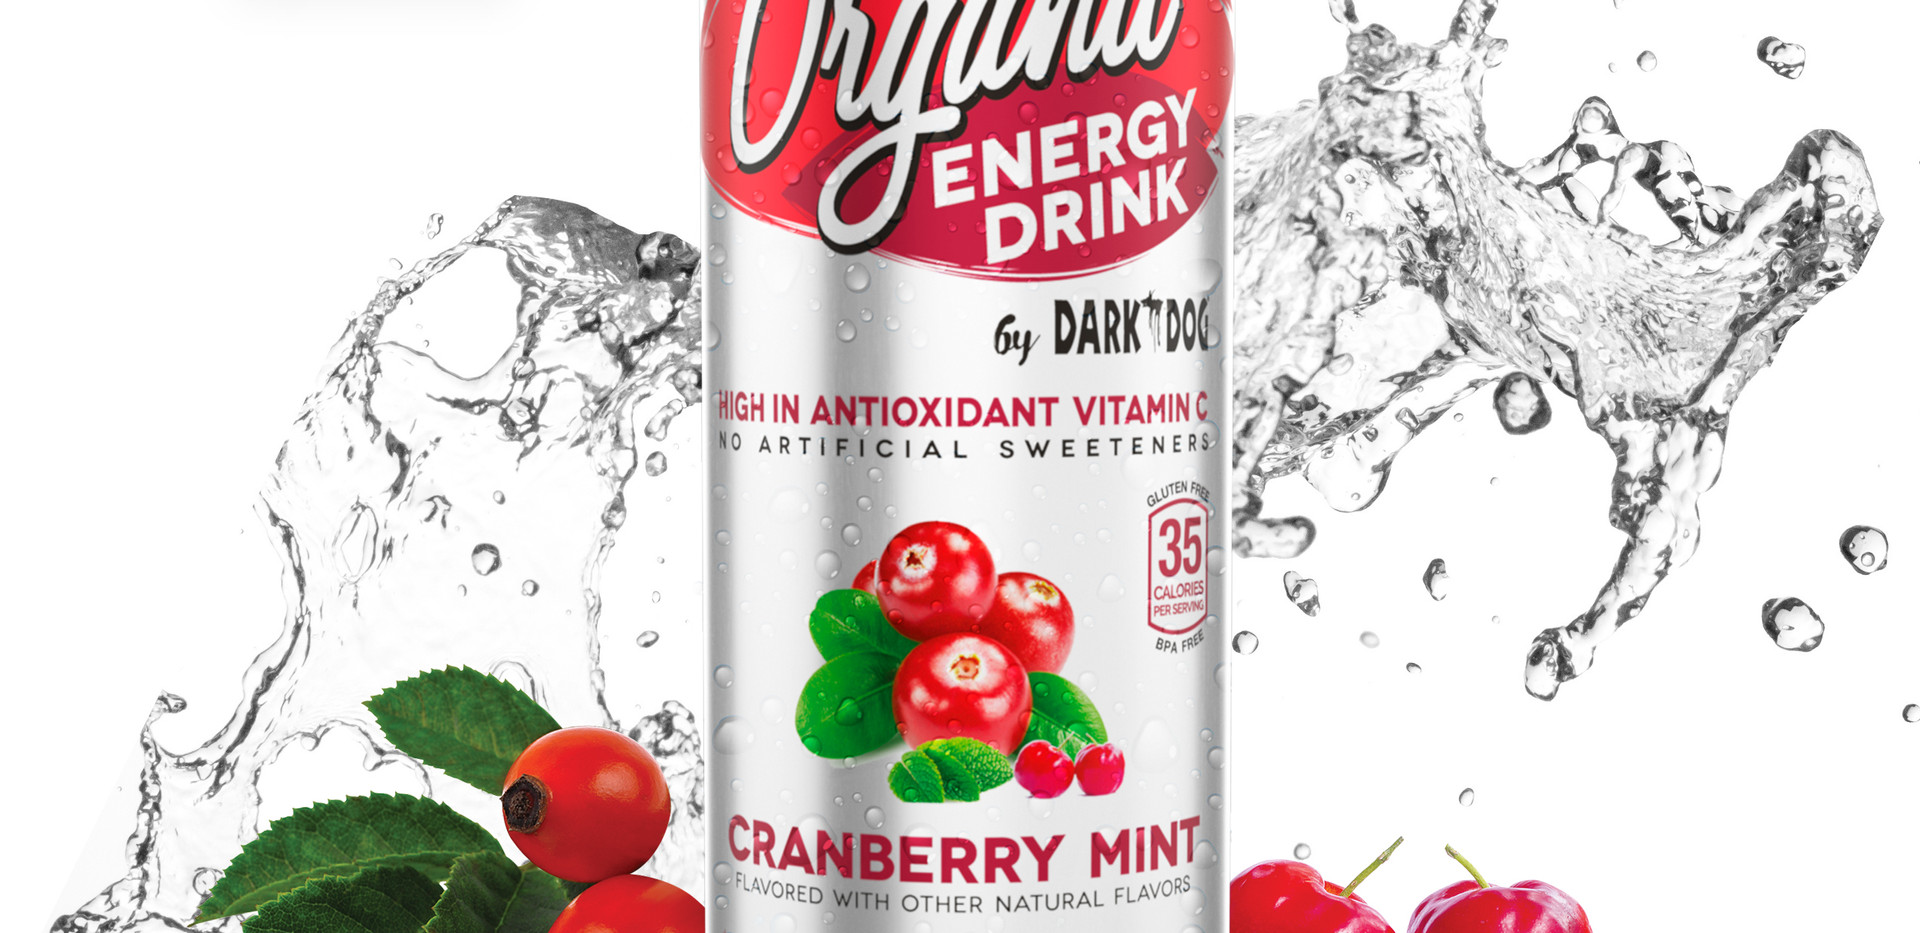 ORGANIC ENERGY DRINK BY DARK DOG CRANBERRY MINT